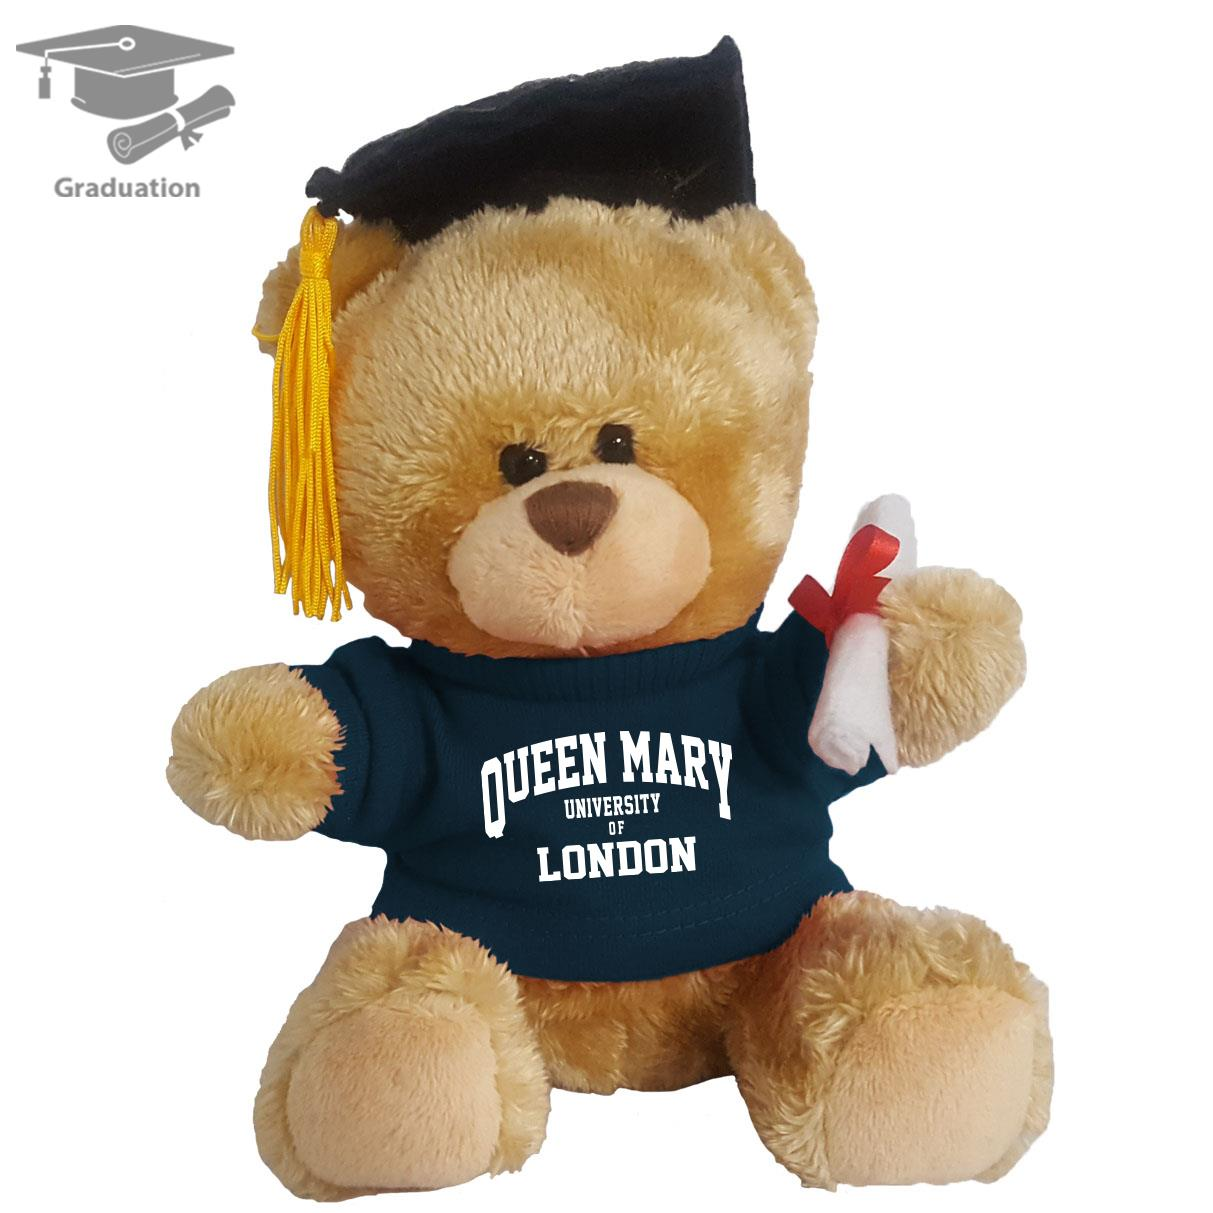 Pipp The Graduation Bear